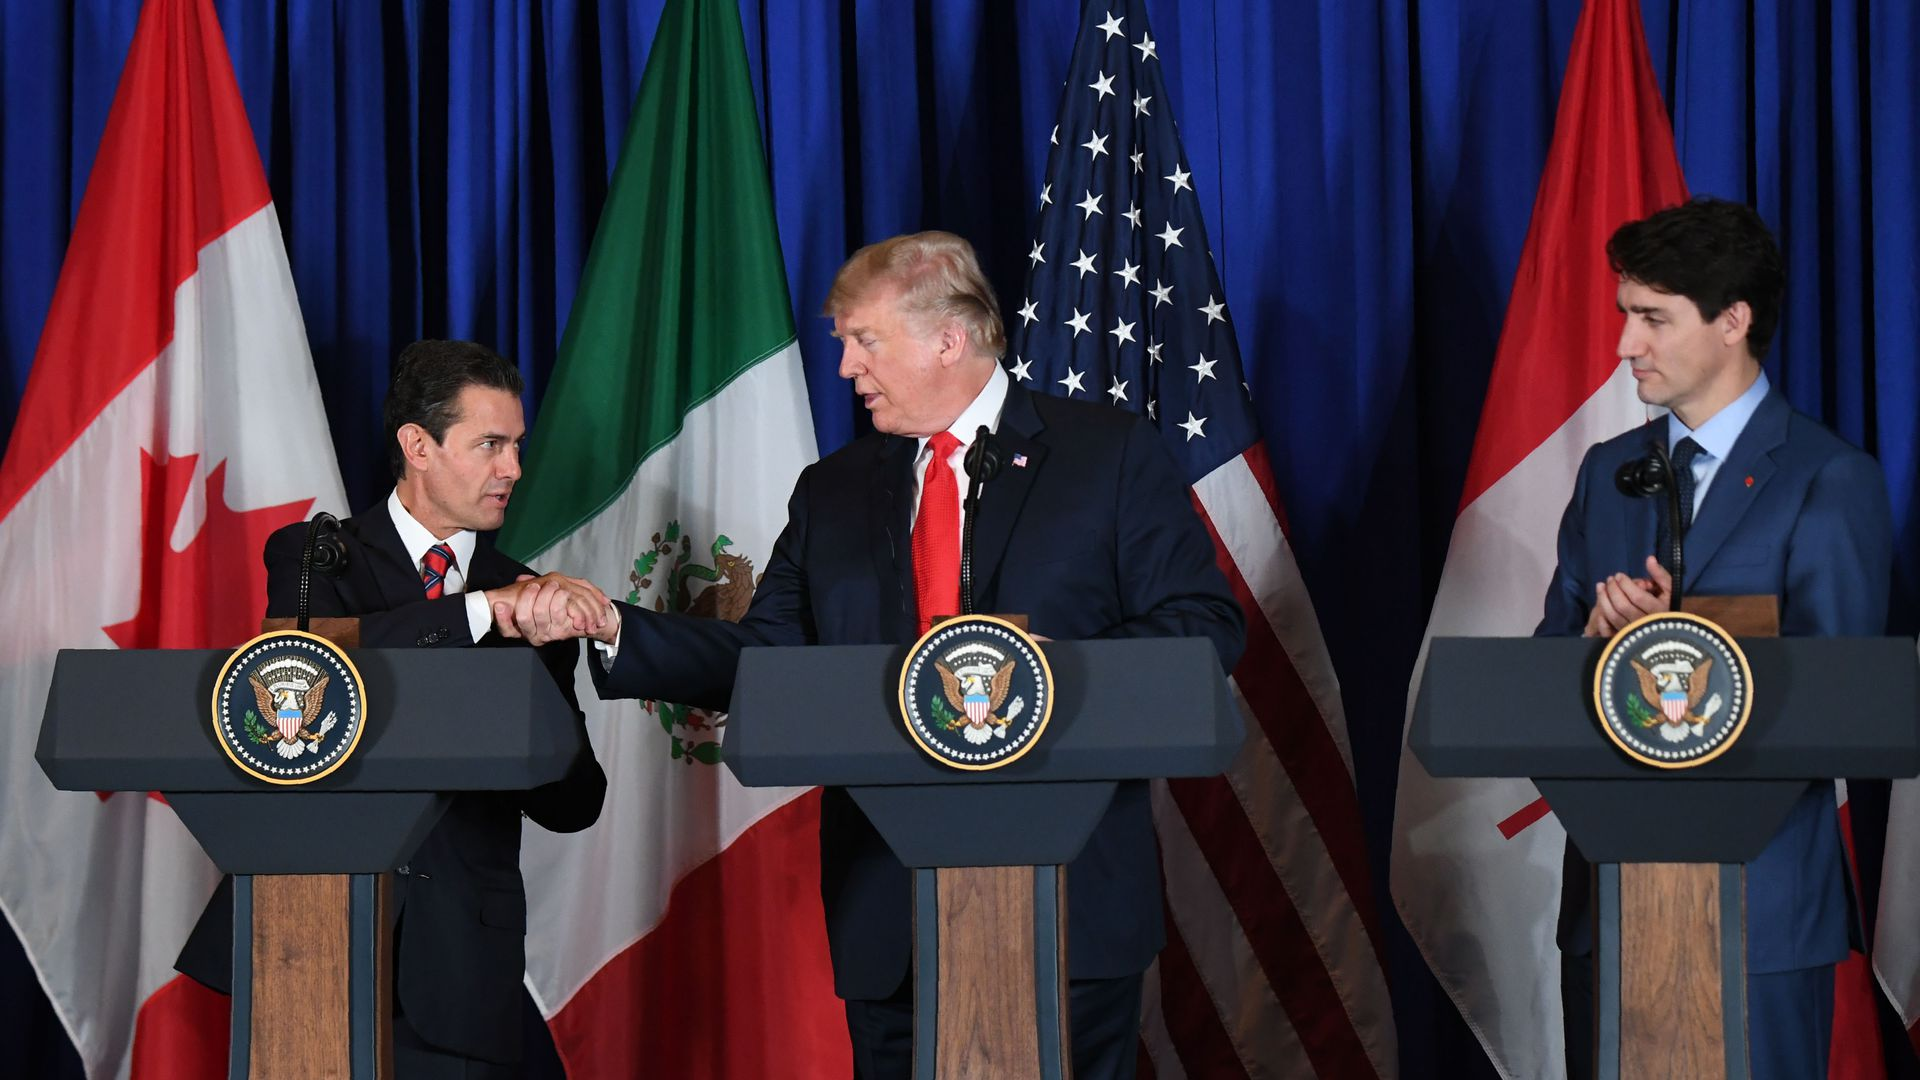 U.S. set to lift steel and aluminum tariffs on Canada and Mexico, paving the way for USMCA